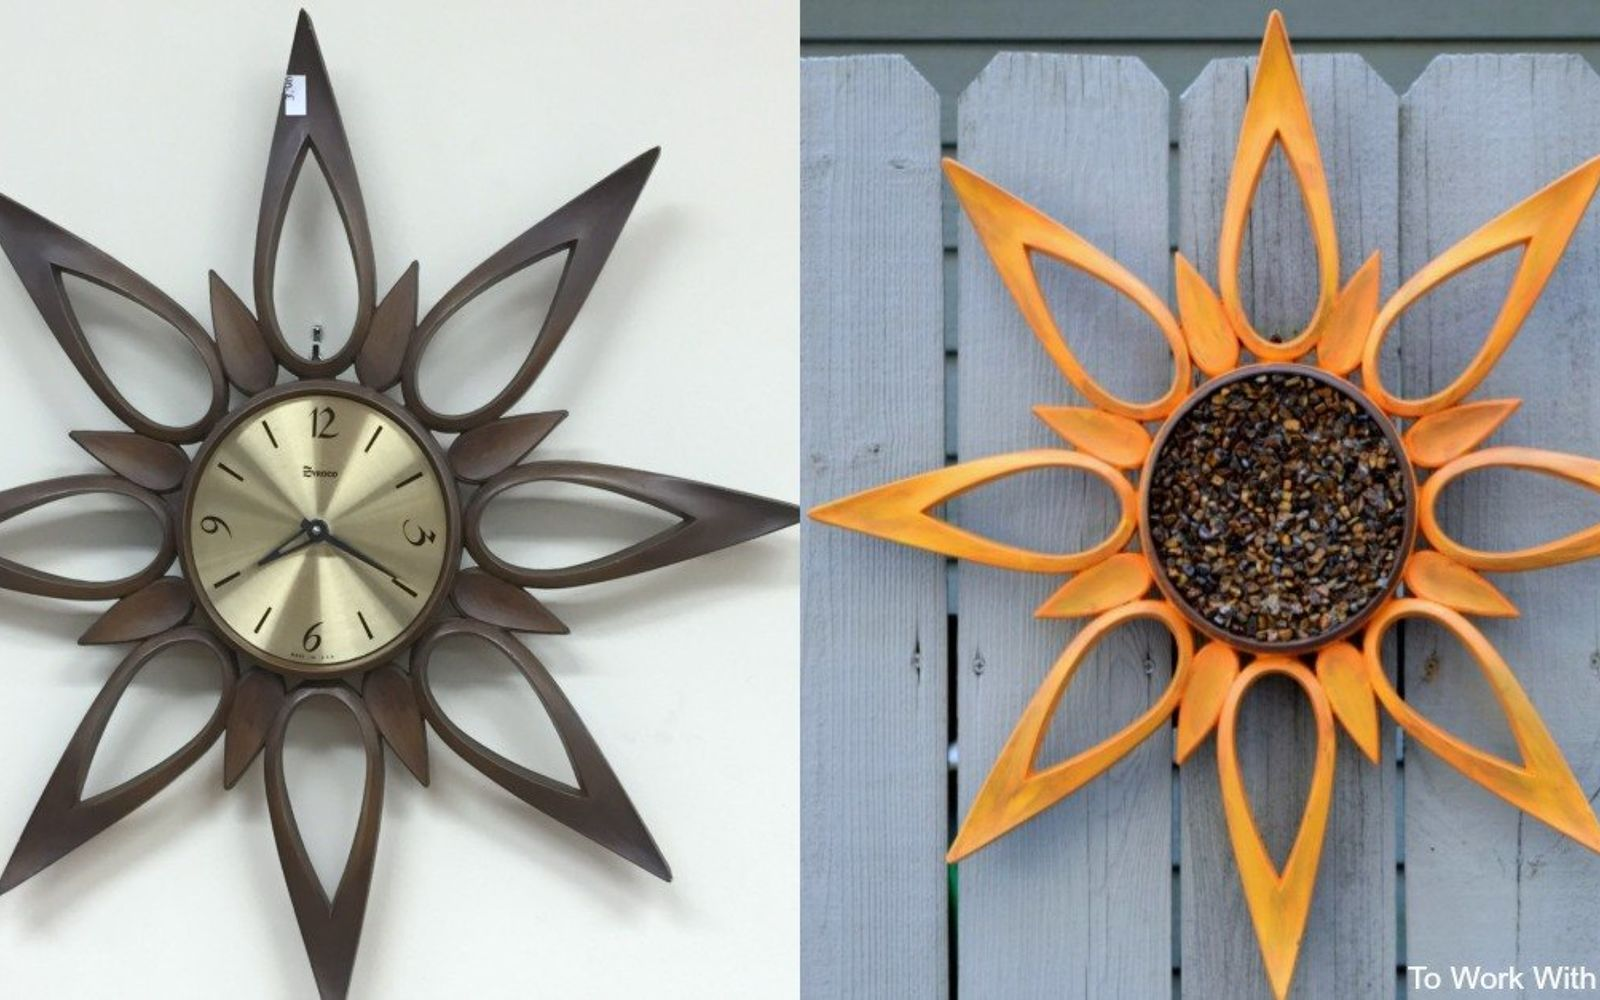 s 15 lovely repurposed items perfect for your garden, Recreate A Clock Into A Garden Sunflower